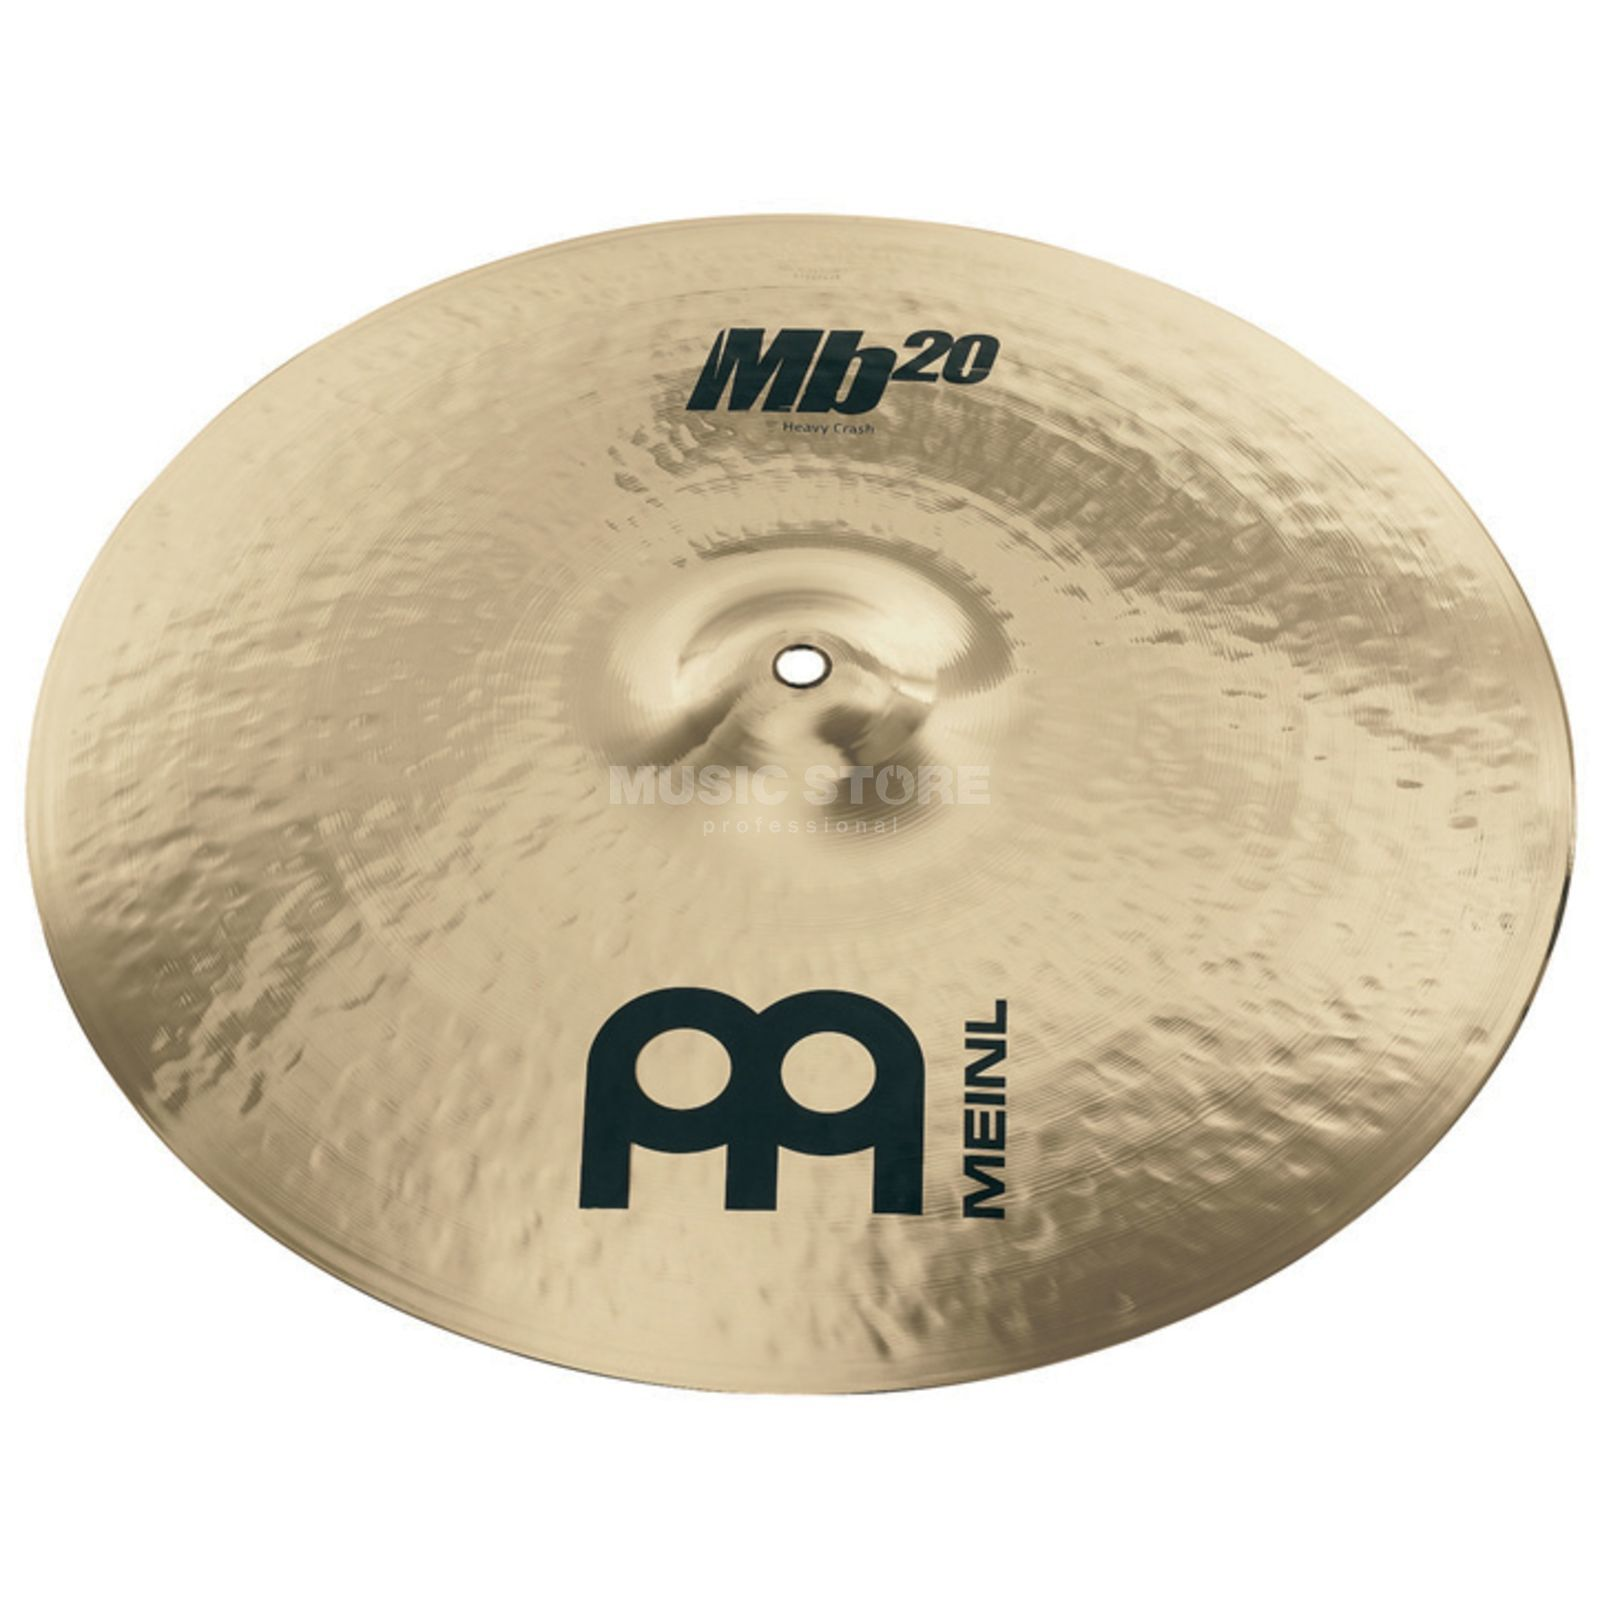 "Meinl MB20 Heavy Crash 16"" MB20-16HC-B, Brilliant Finish Produktbillede"